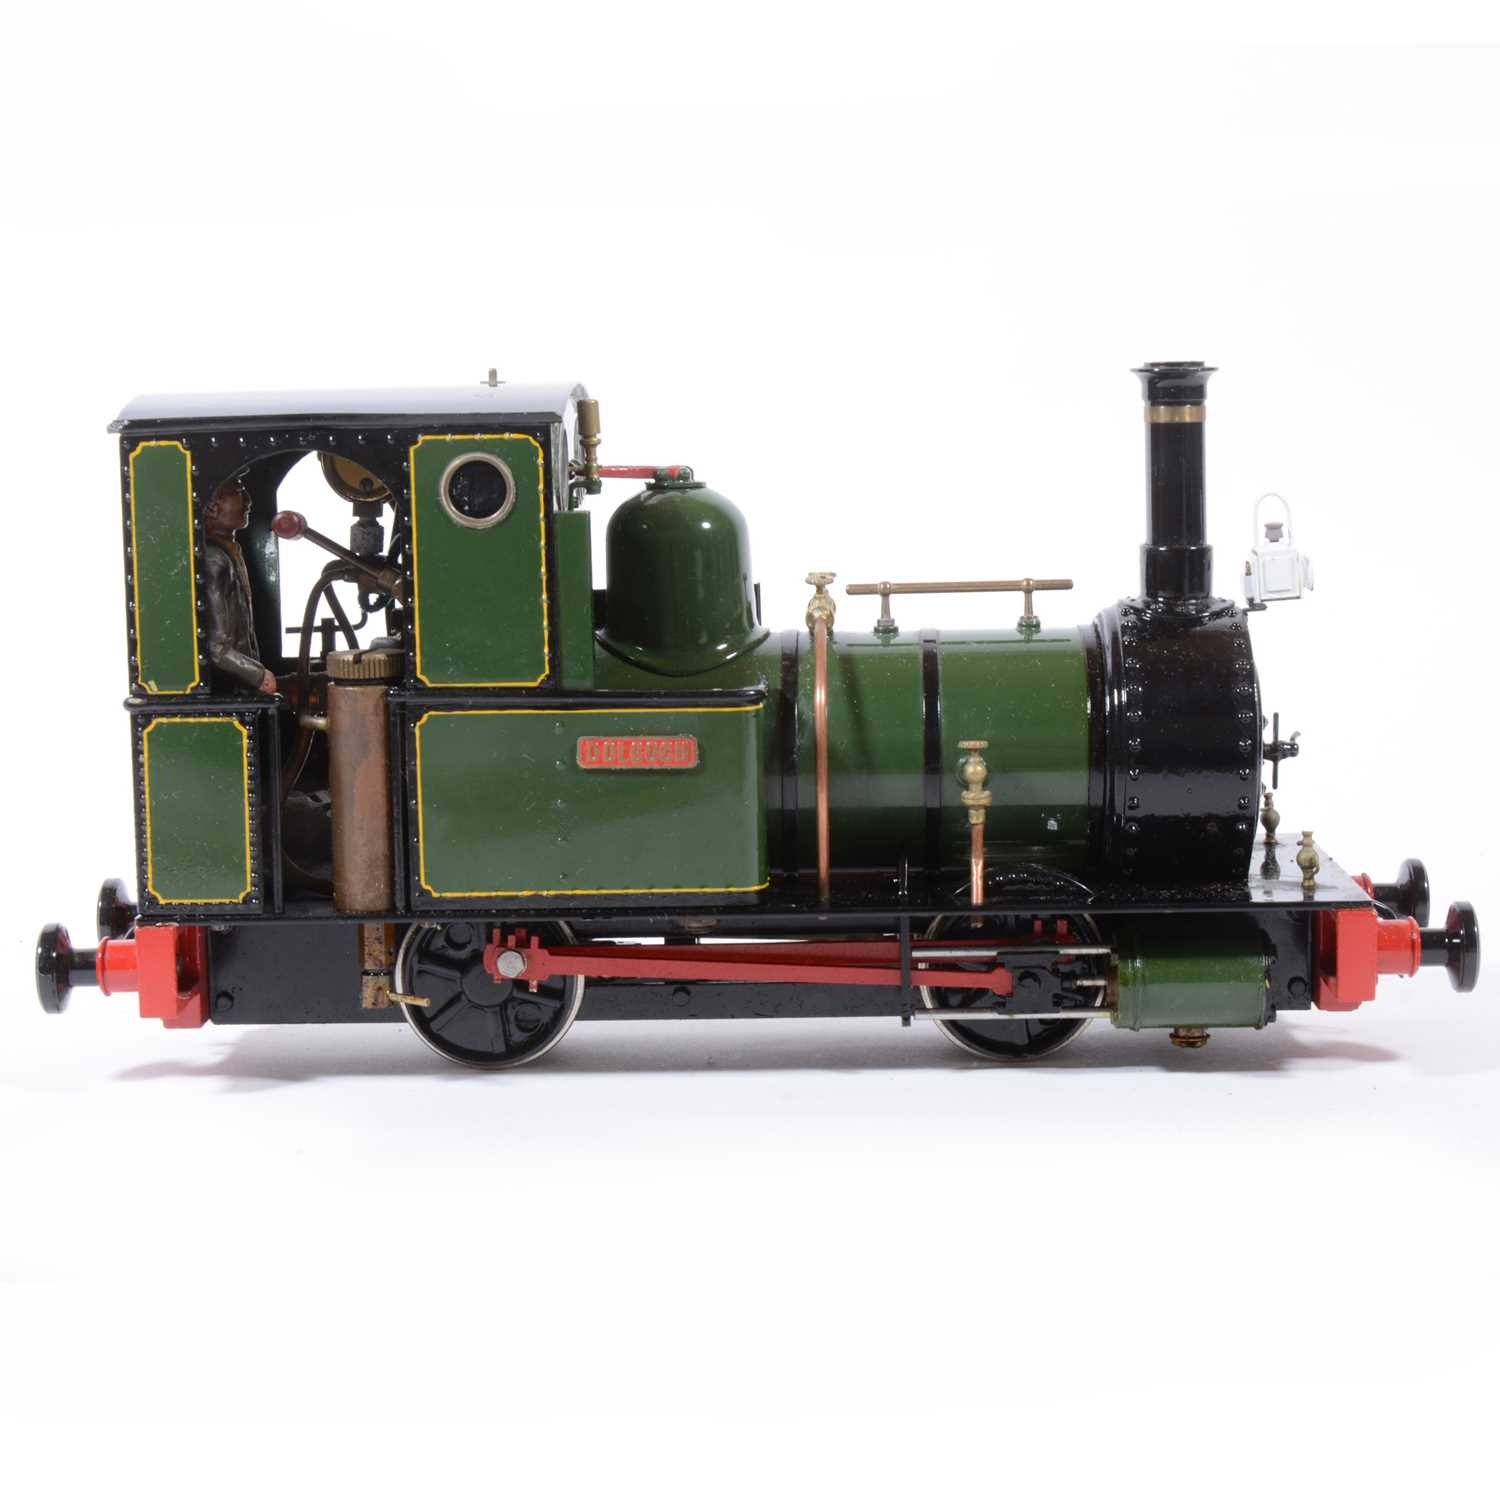 Lot 62 - Finescale Engineering Comany live steam locomotive, gauge 1 / G scale, 32mm, 0-4-0, 'Dolgoch' Fletcher Jennings loco, green, with booklet, in case.